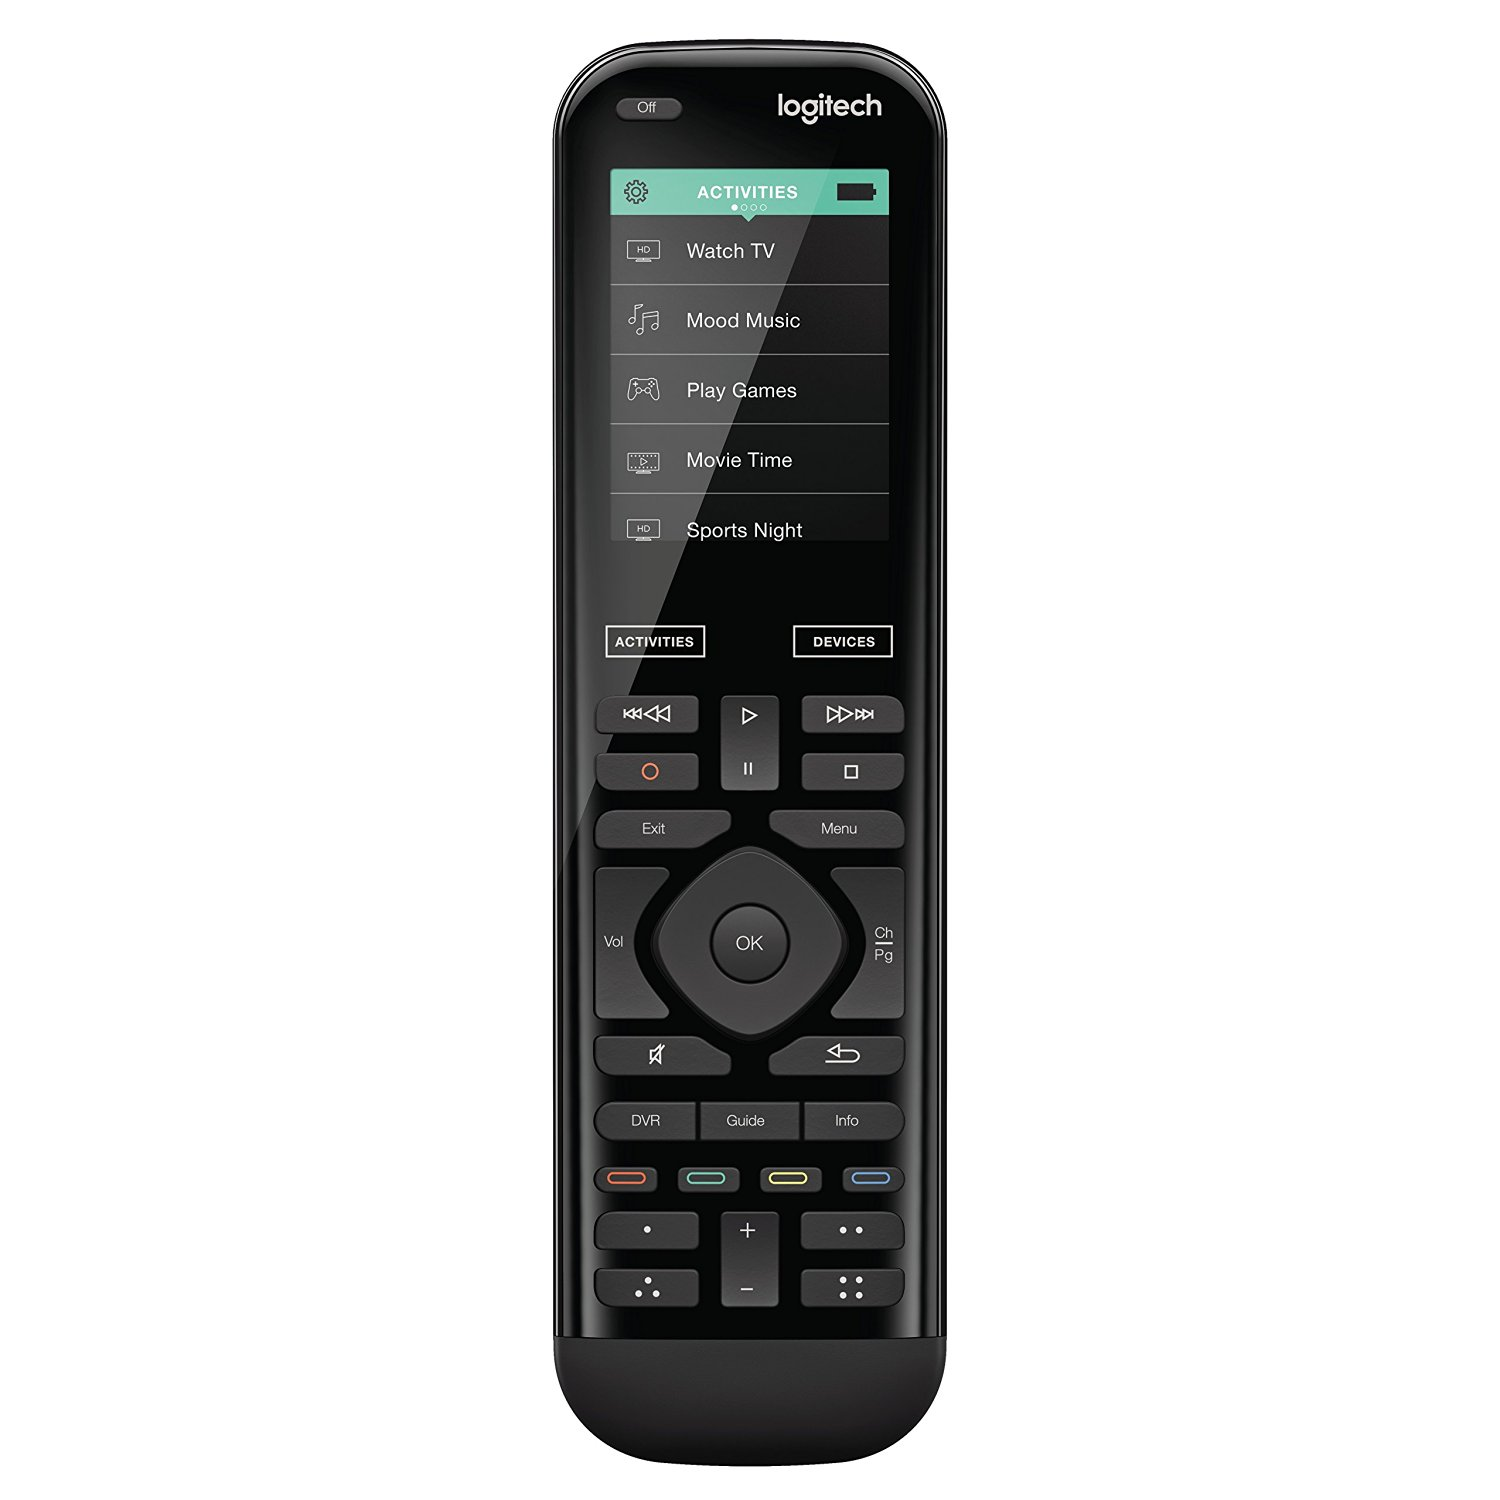 logitech-advanced-remote-harmony-950-ir-remote-control-budget-universal-standard-remotes-for-home-theaters